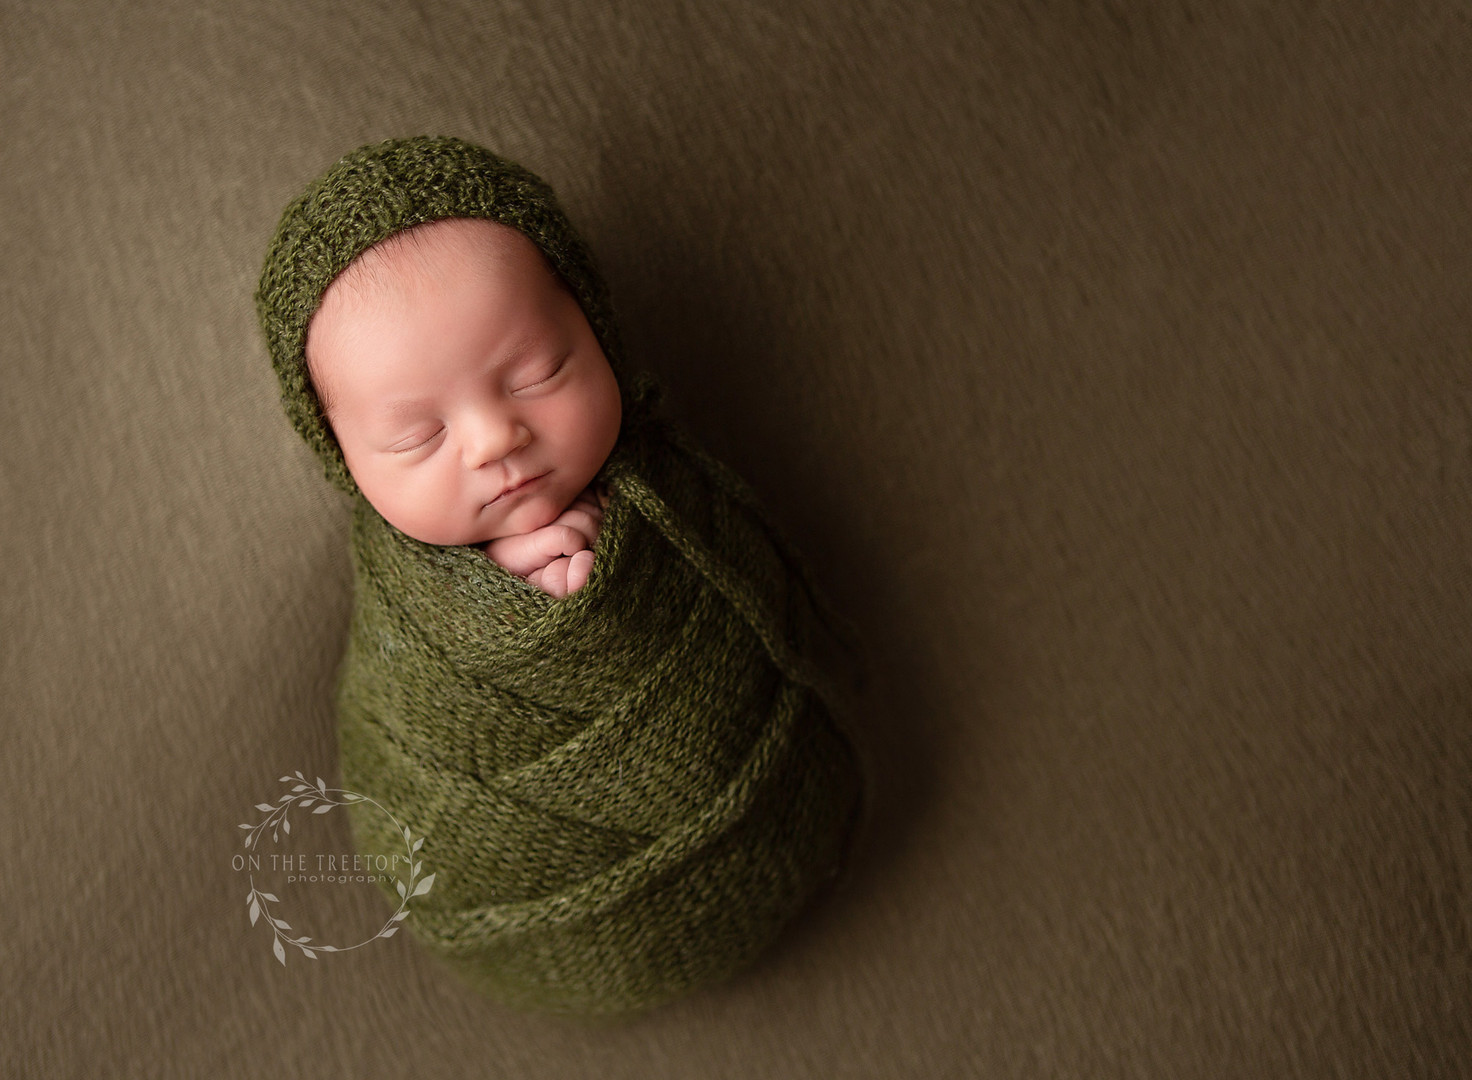 photograph of a swaddled newborn taken in Aliso Viejo California